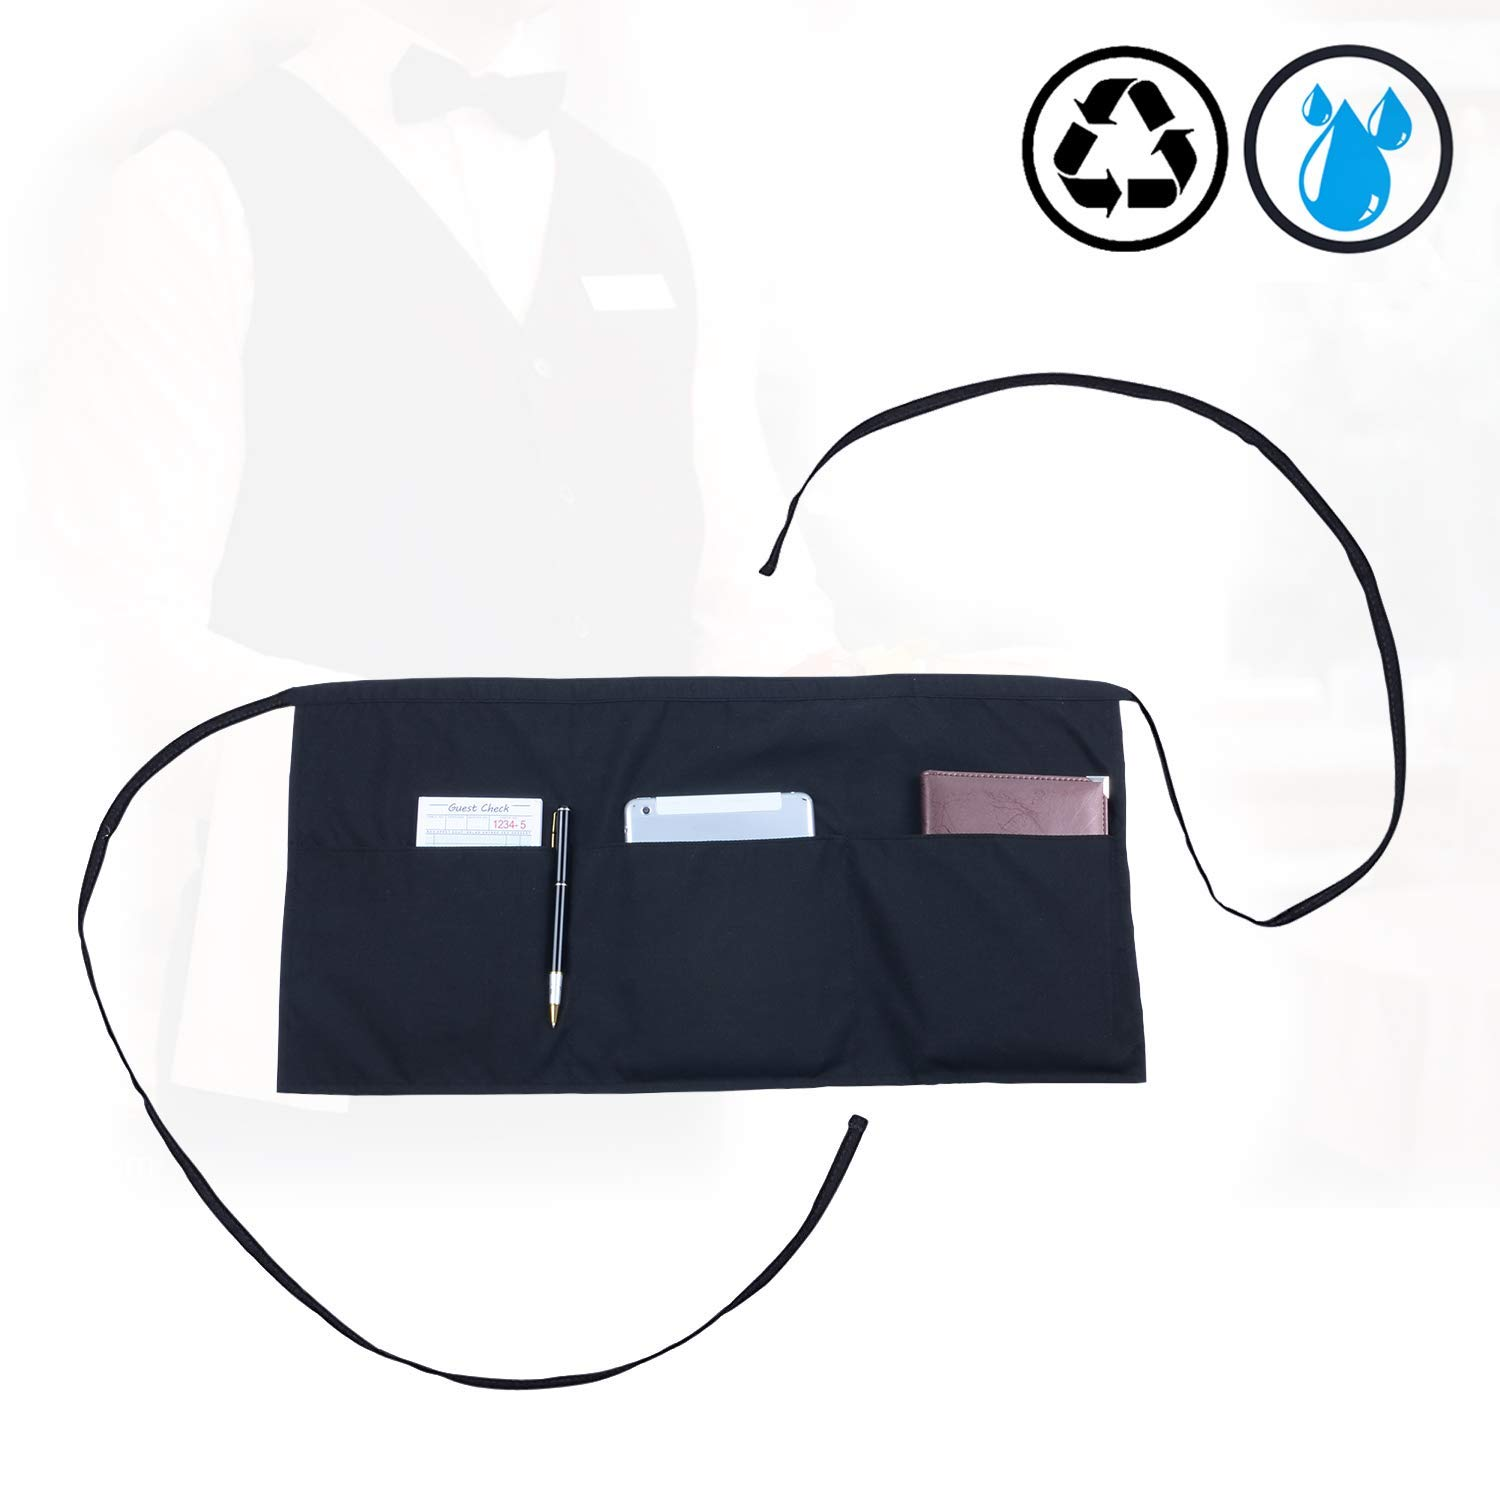 Adult's Waist Apron with 3 Pockets | Black Half Apron for Waitress Waiter Server Waitstaff |Short Aprons Kitchen Restaurant for Women Men | Money Apron for Holding Server Book Guest Check Pad